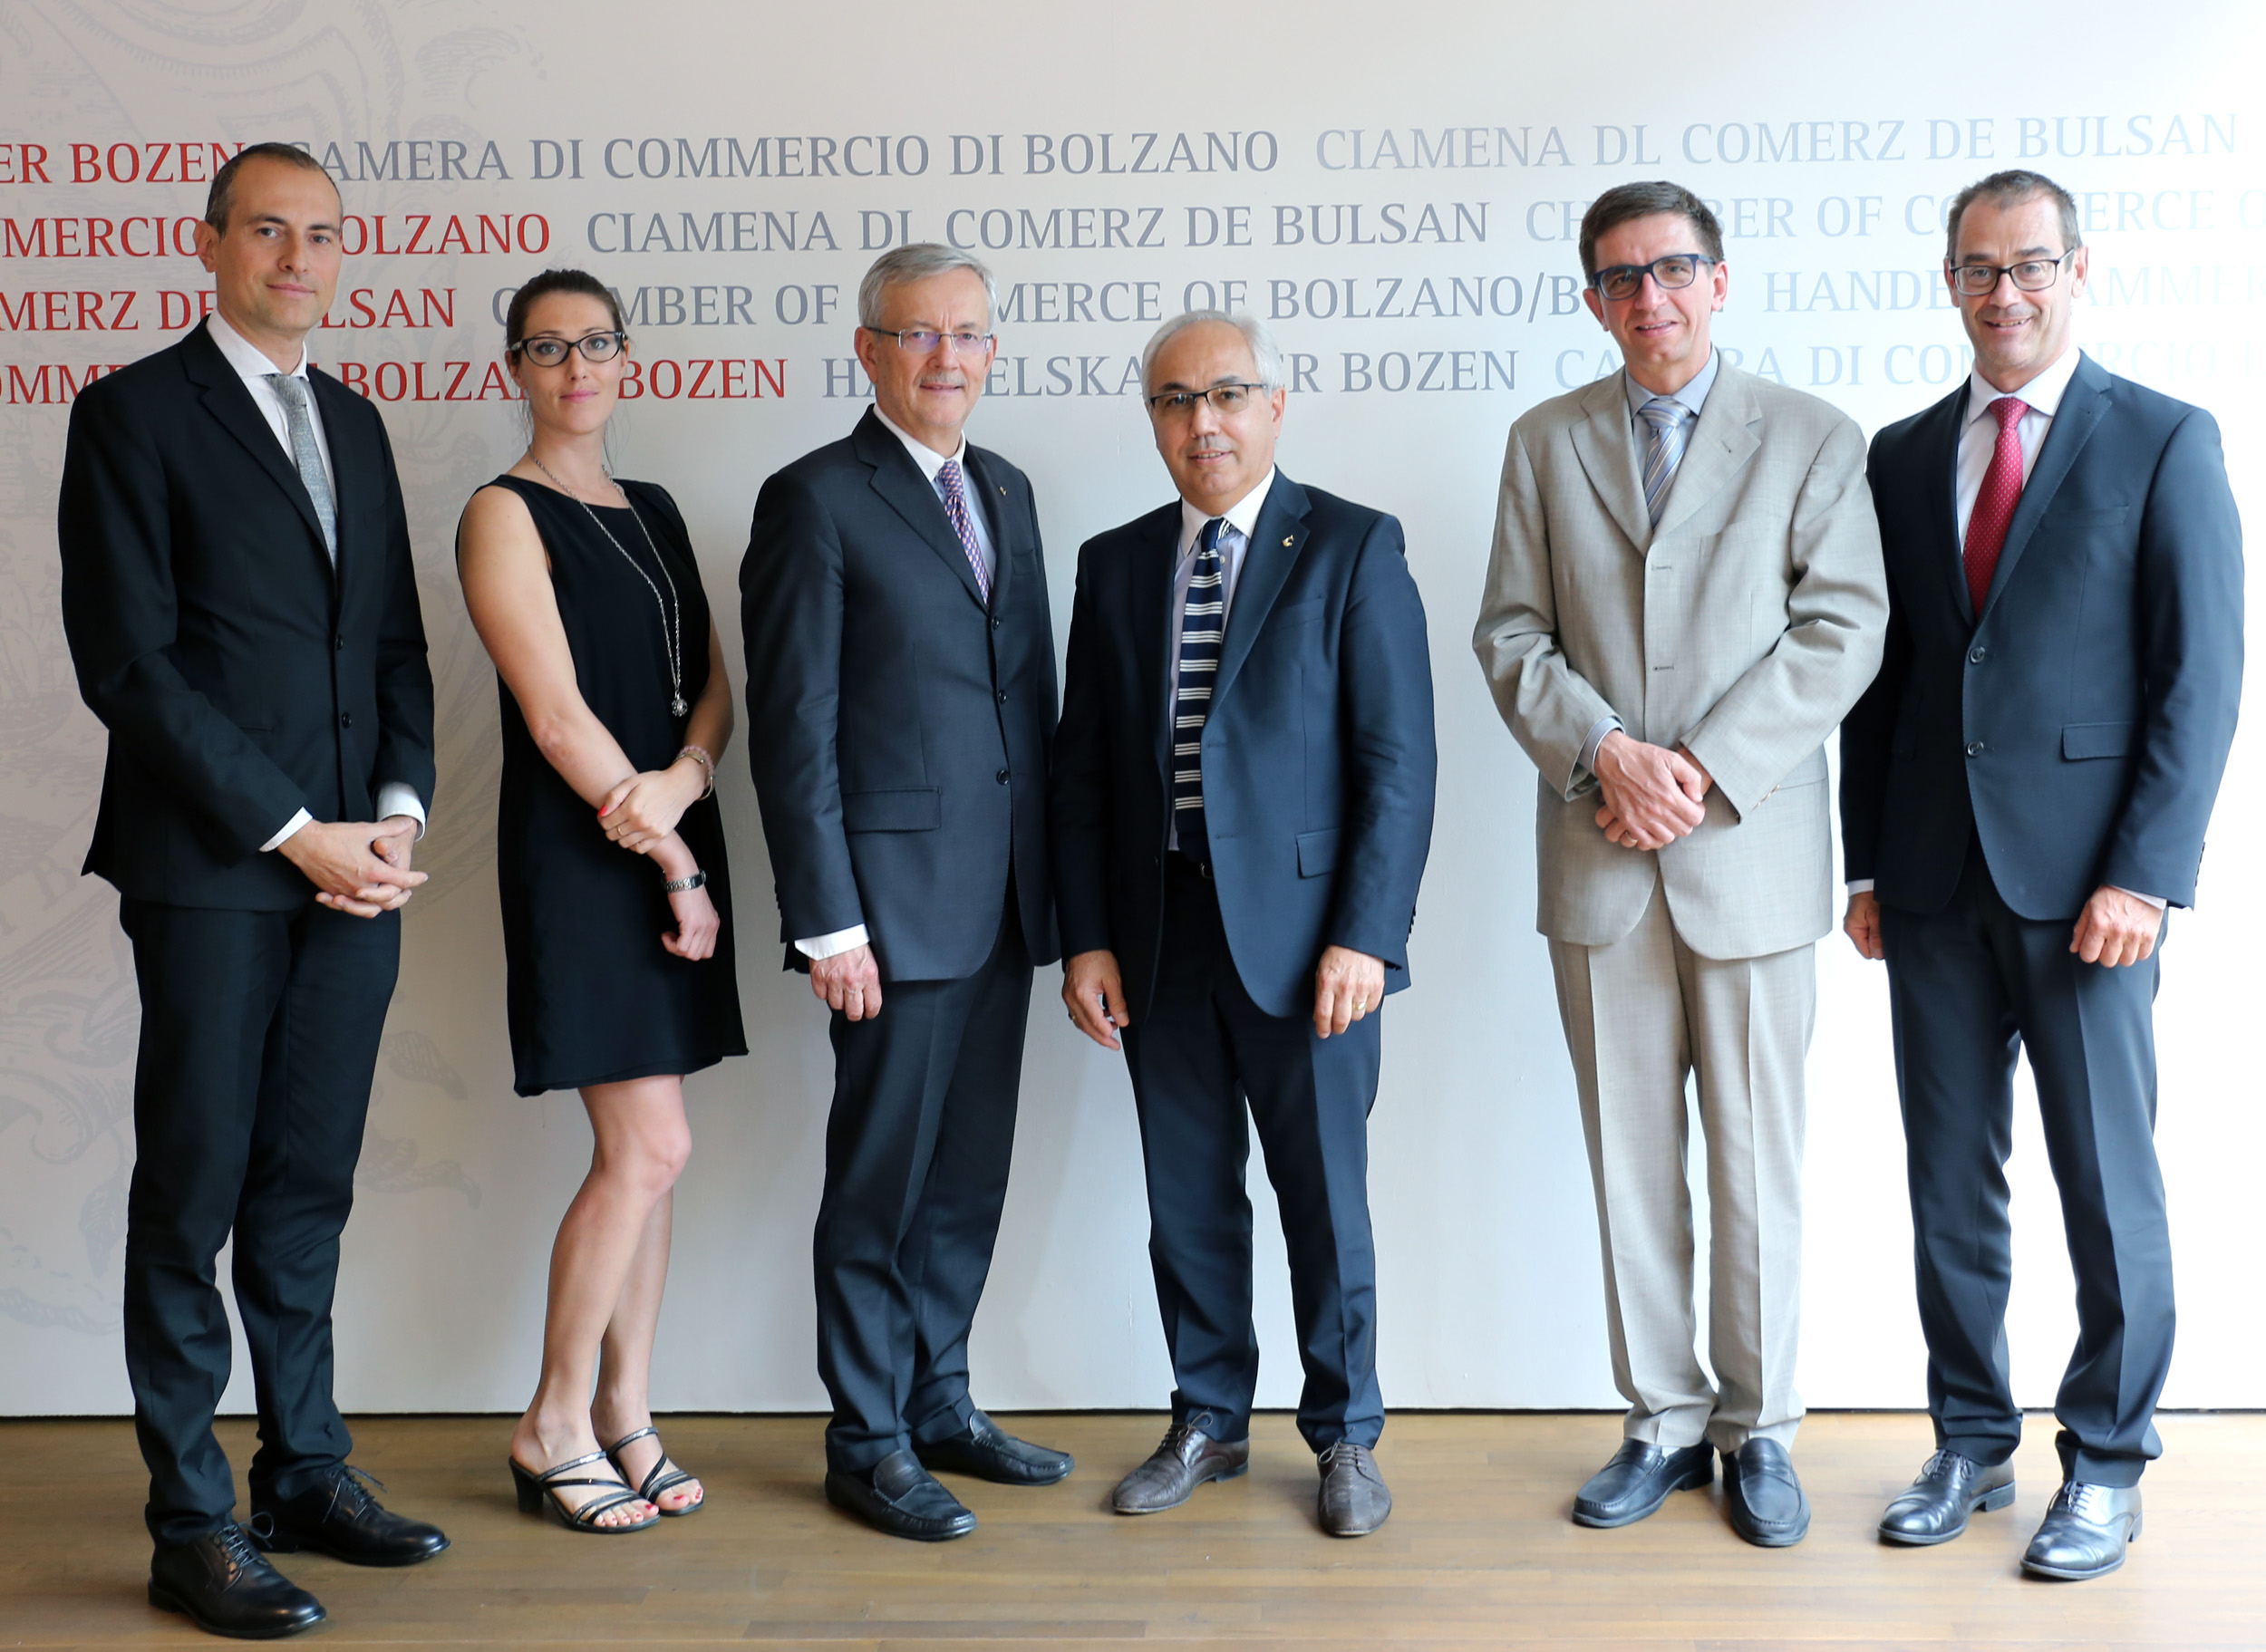 Immagine President of Unioncamere del Veneto Mario Pozza meets President Ebner and Segretary-General Aberer of the Bolzano Chamber of Commerce